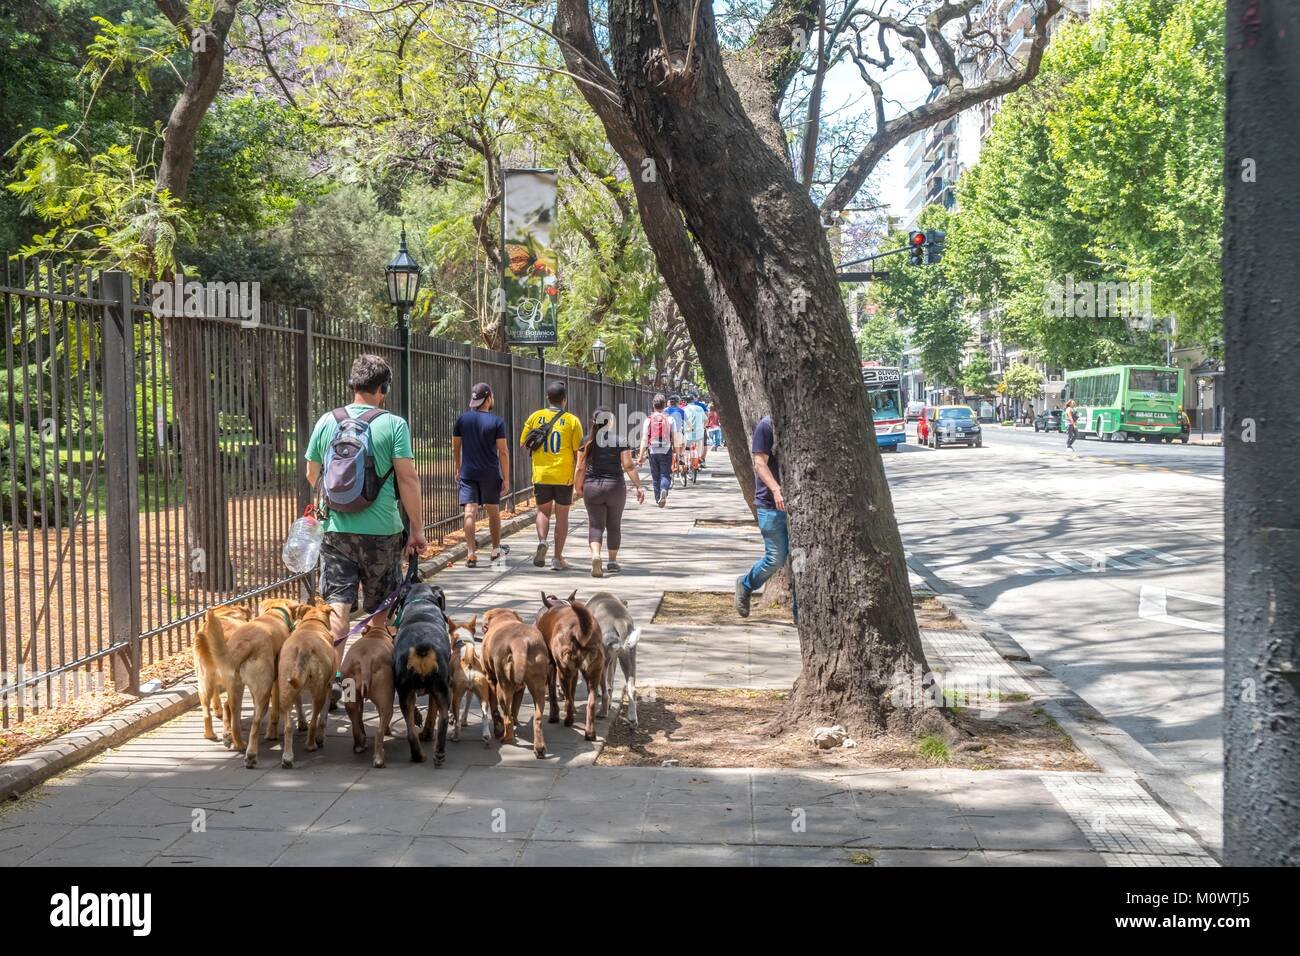 Argentine, province de Buenos Aires, Buenos Aires,dog walker Photo Stock